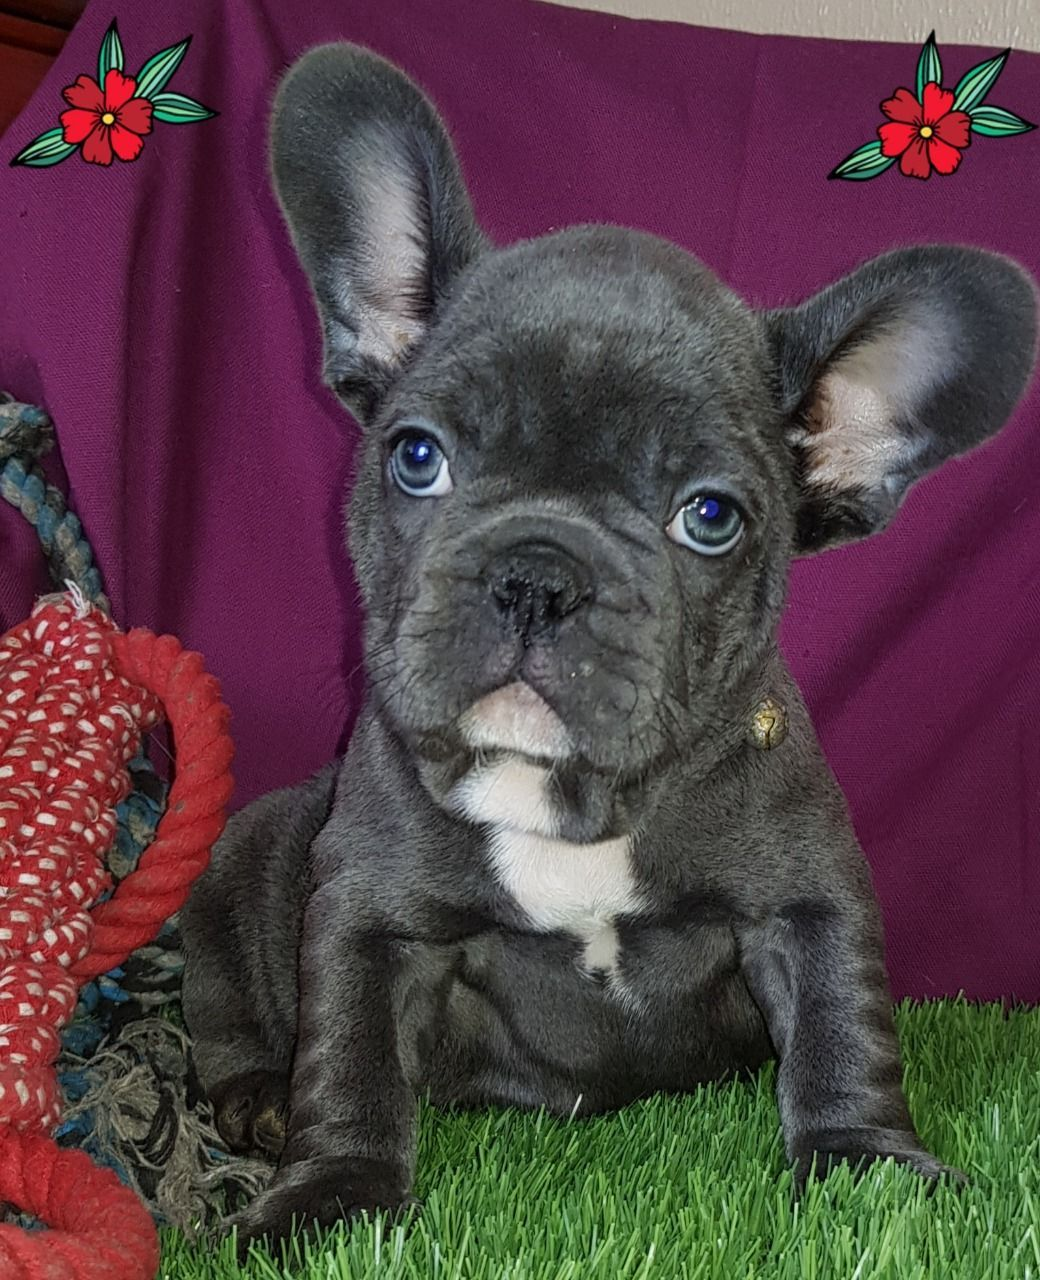 Frenchieforsale Frenchie4sale Frenchbulldogforsale